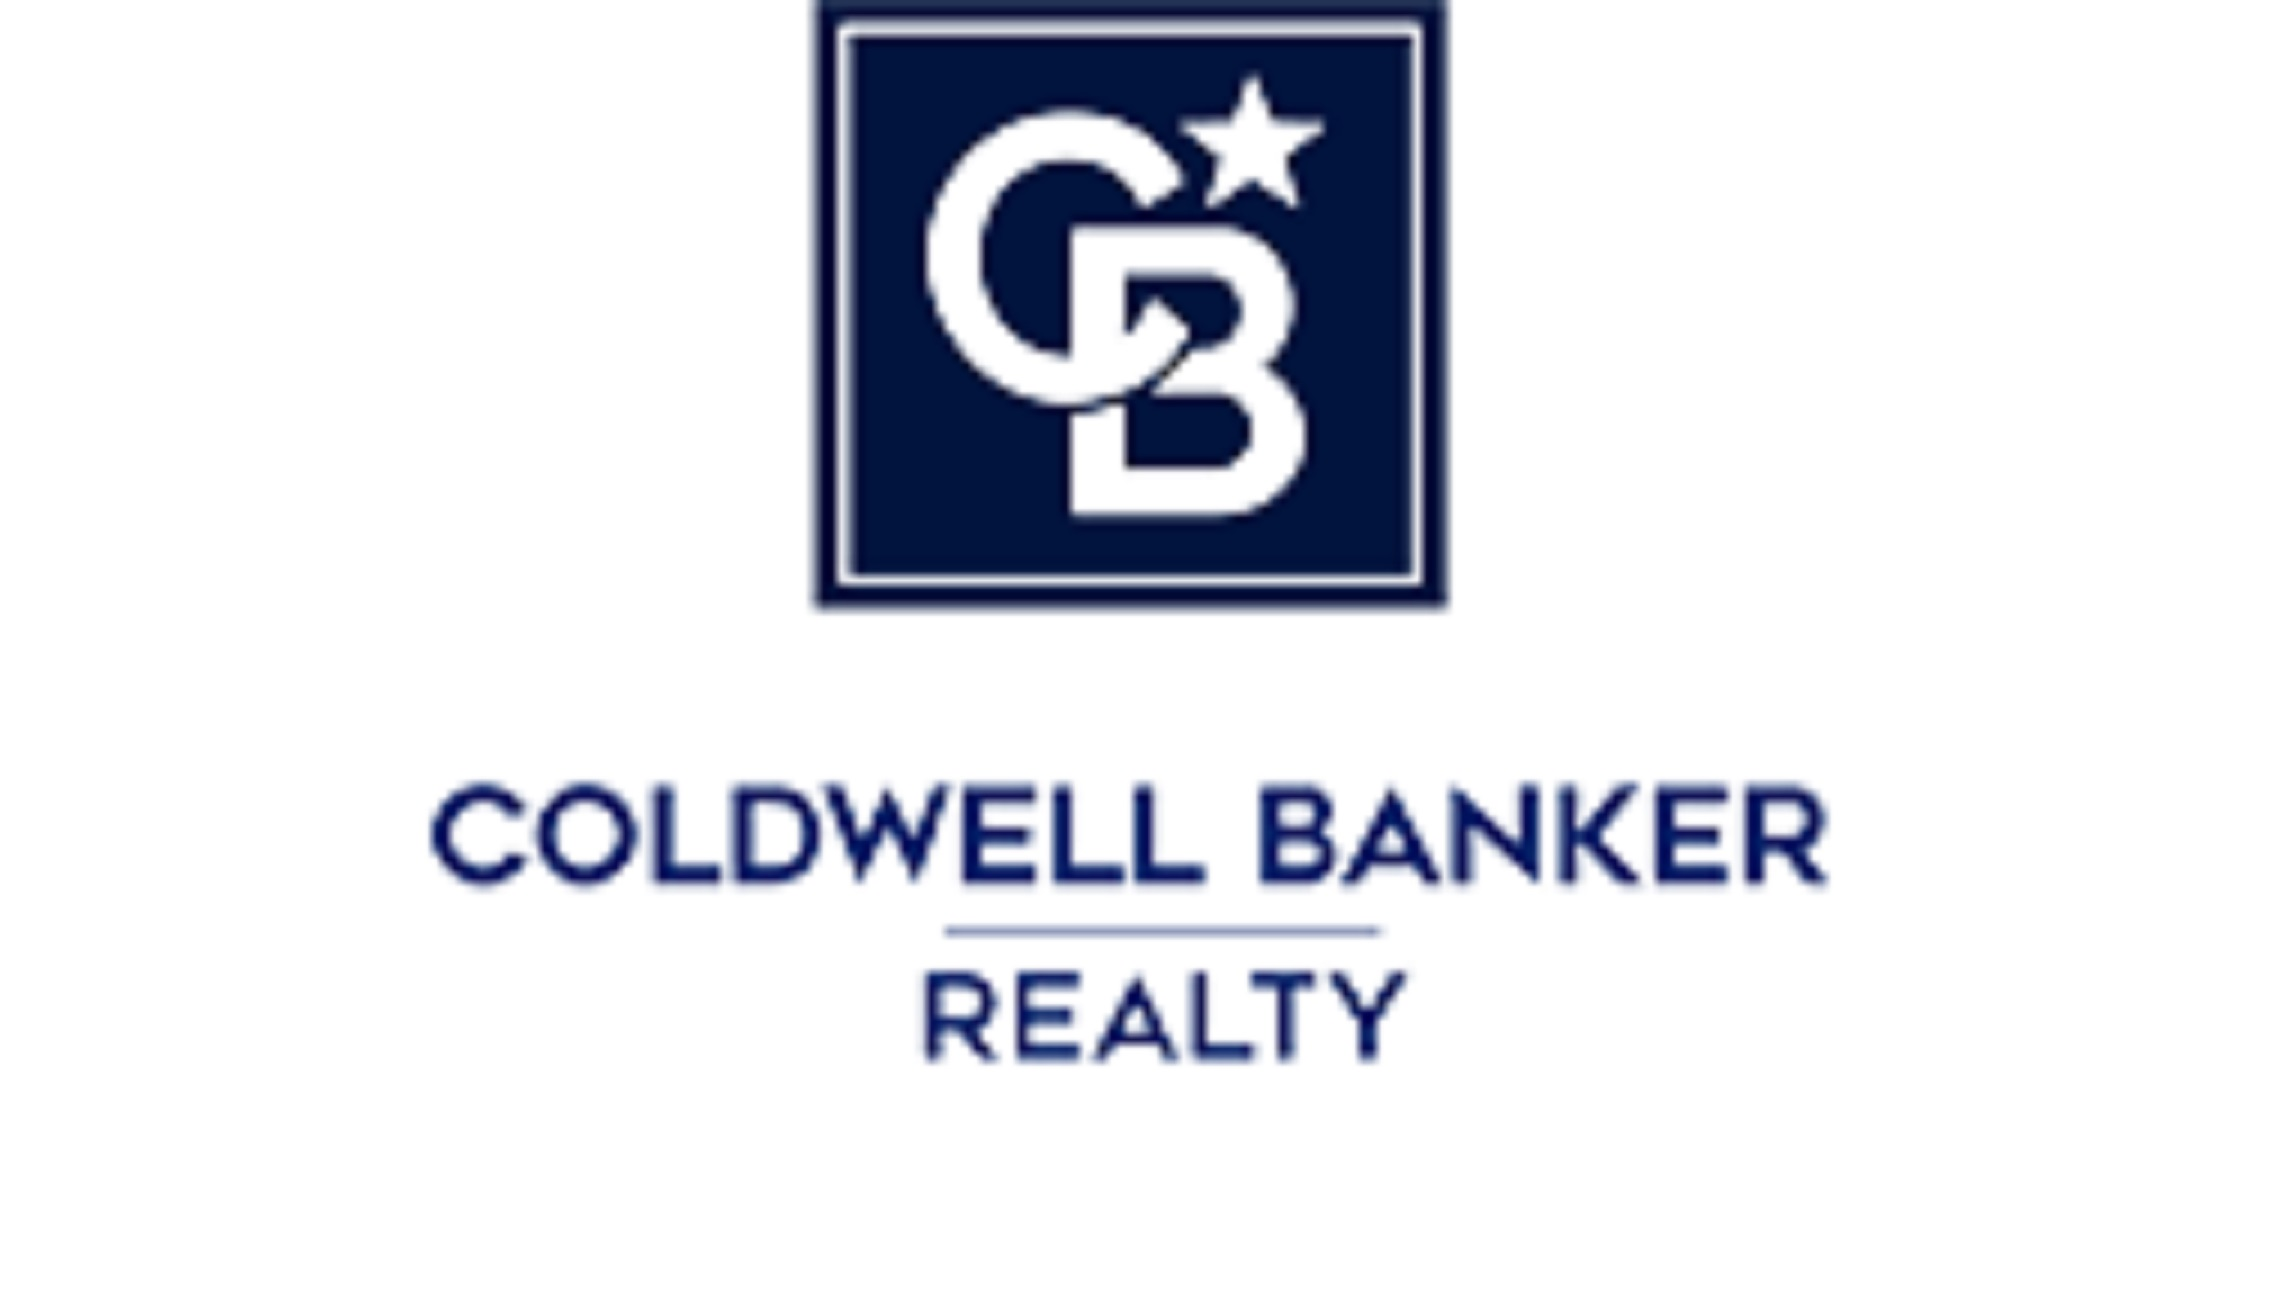 Kevin Key, Real Estate Agent, Coldwell Banker Realty